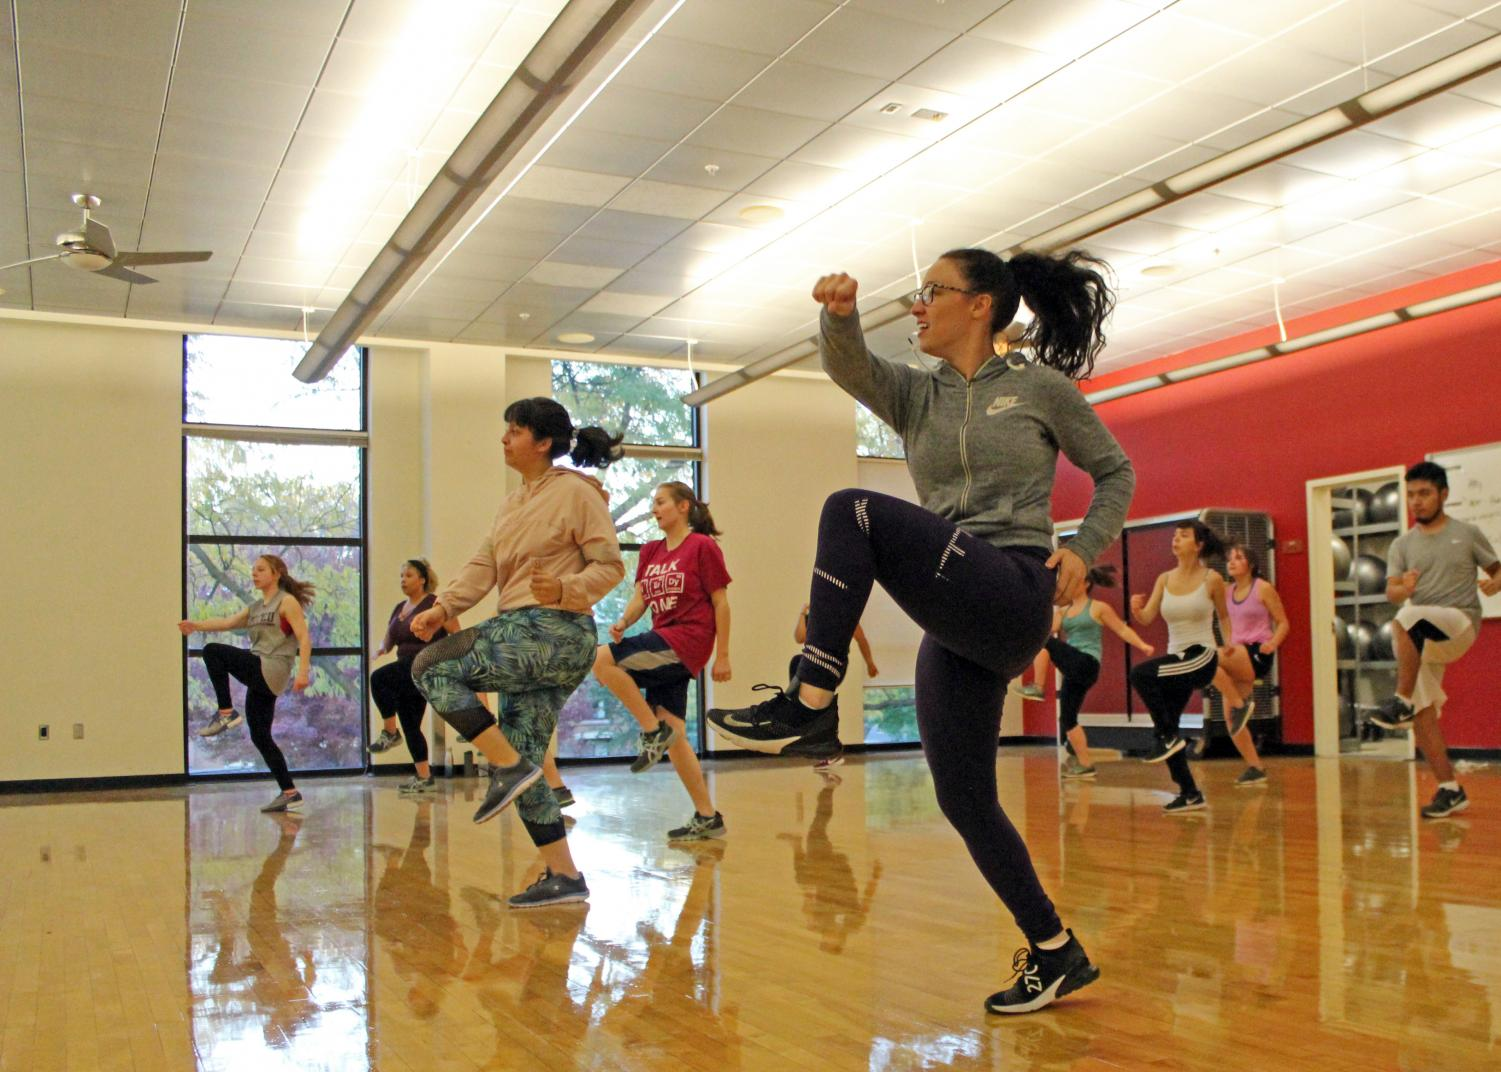 Jacqueline Flaherty shows her high-kick skills during a Zumba class at the CWU Recreation Center.